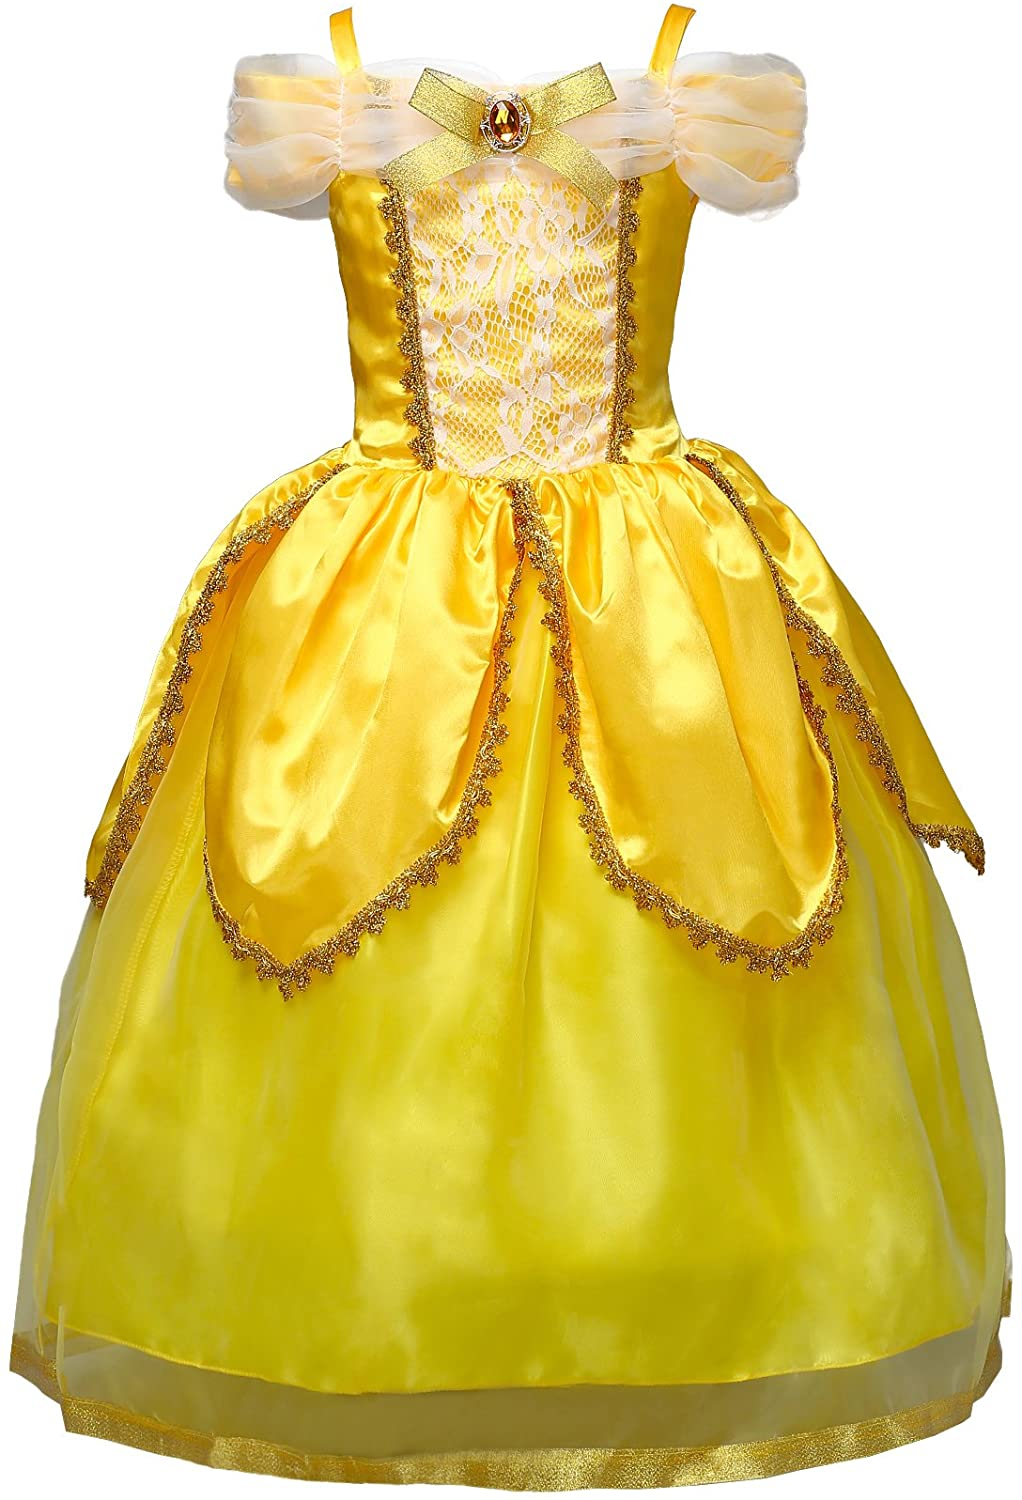 Dressy Daisy Girls Princess Dress Up Costumes Halloween Fancy Party Dress Size 3-10